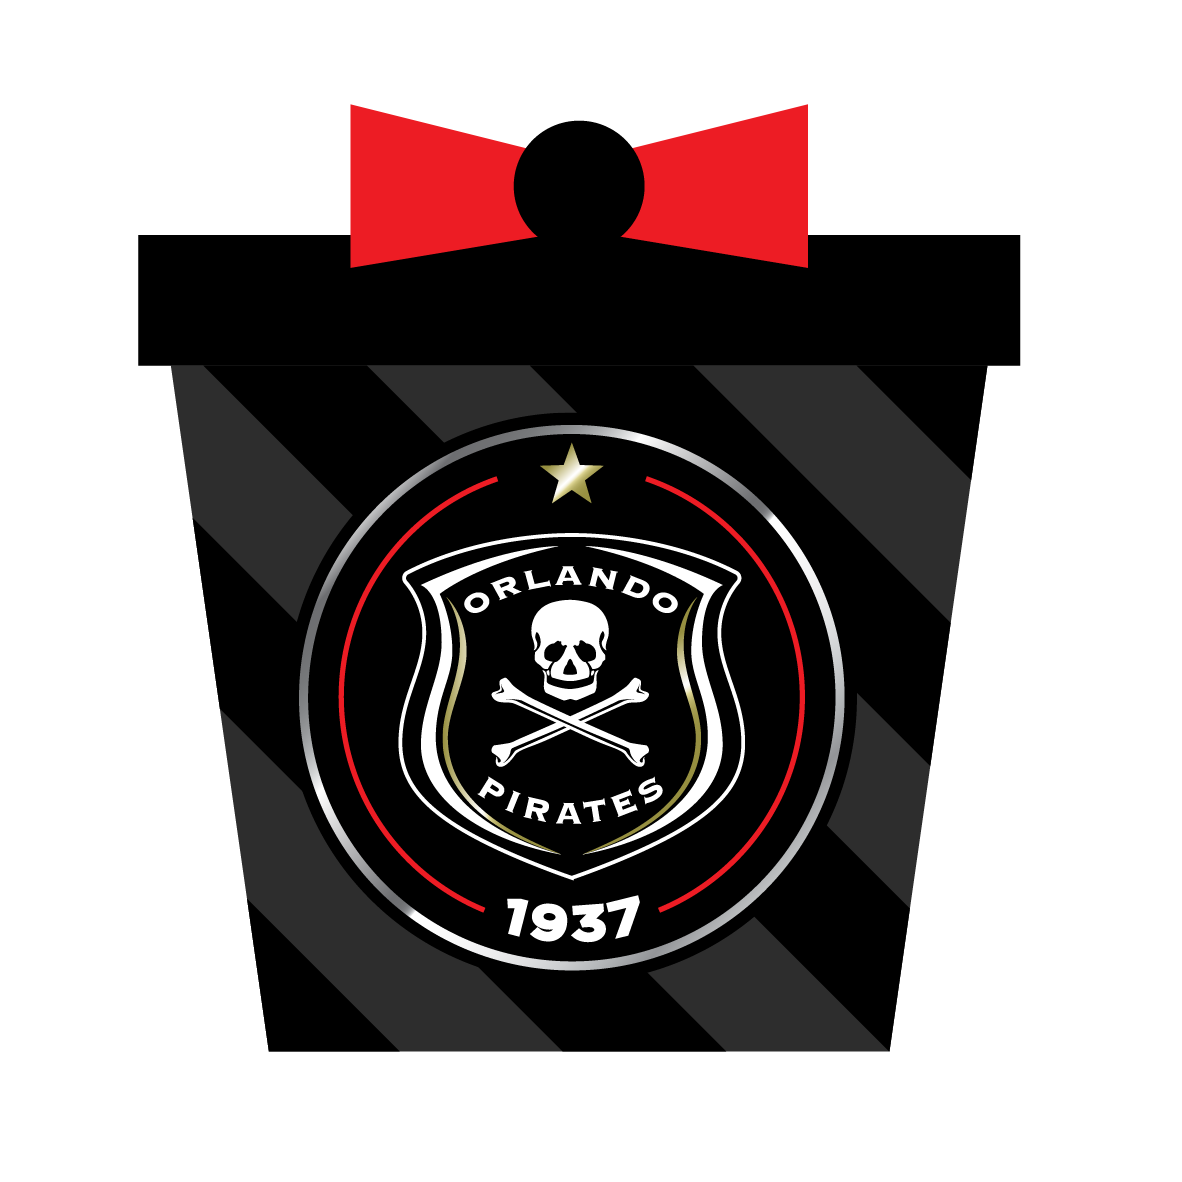 orlando-pirates-fc-south-africa-johannesburg-football-club-01.png